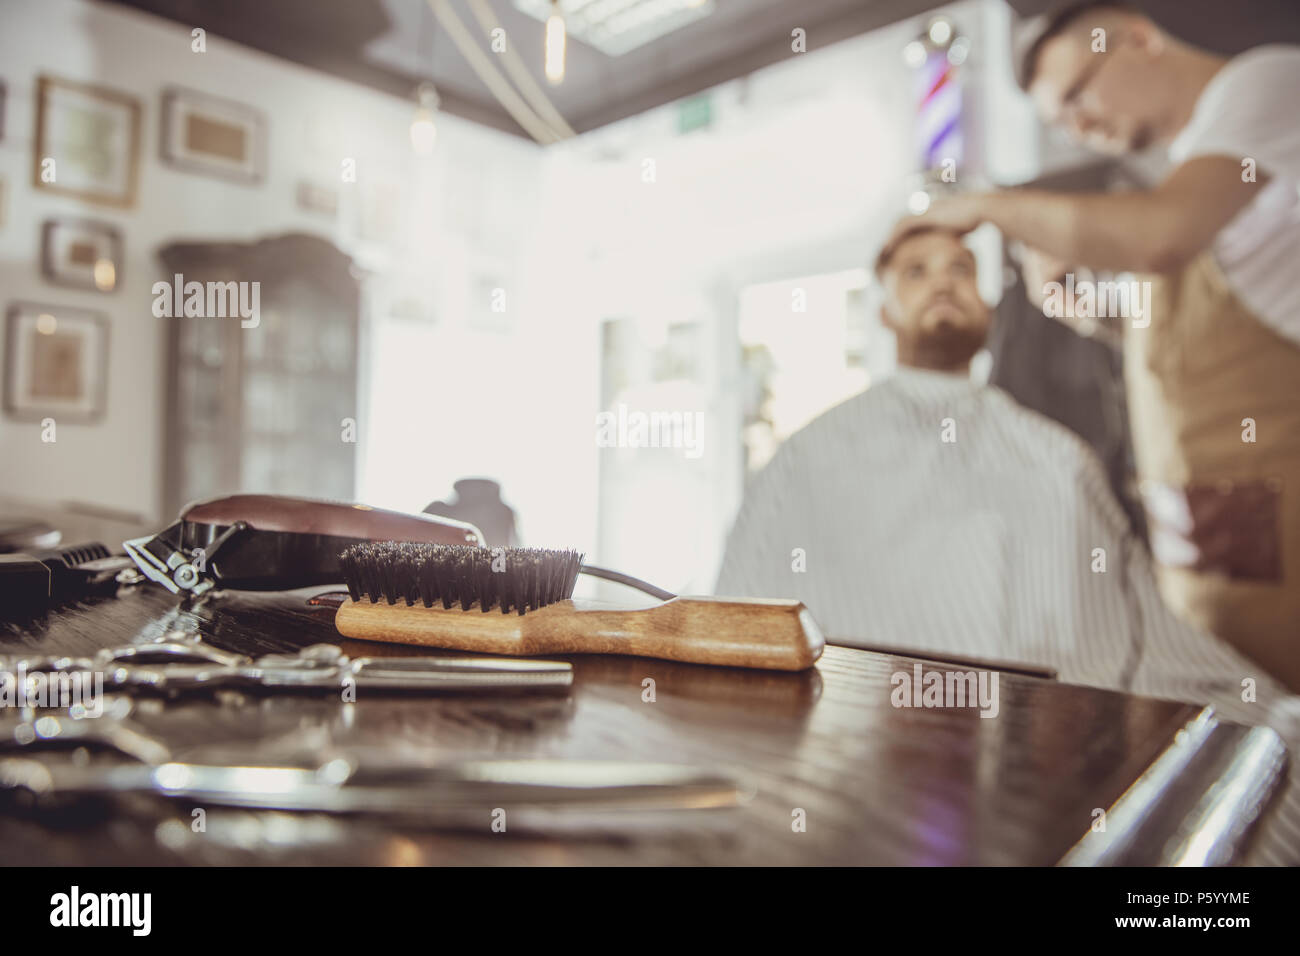 Accesories for cutting on the table in a barbershop and a hairdresser works in the background.  Photo in vintage style - Stock Image